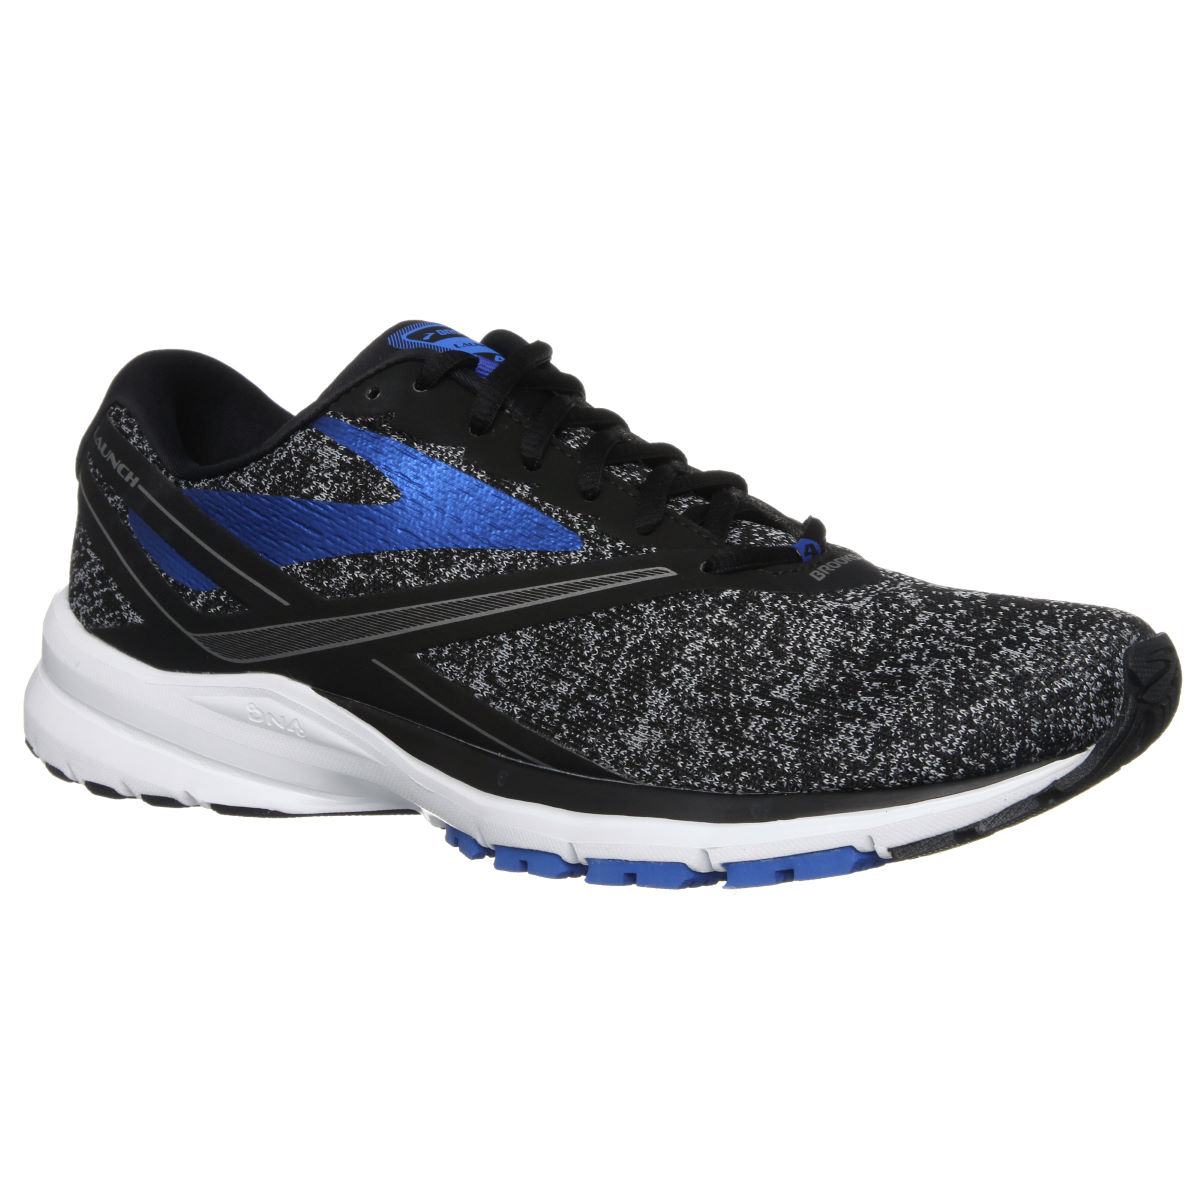 Chaussures Brooks Launch 4 - UK 11 Noir/Bleu